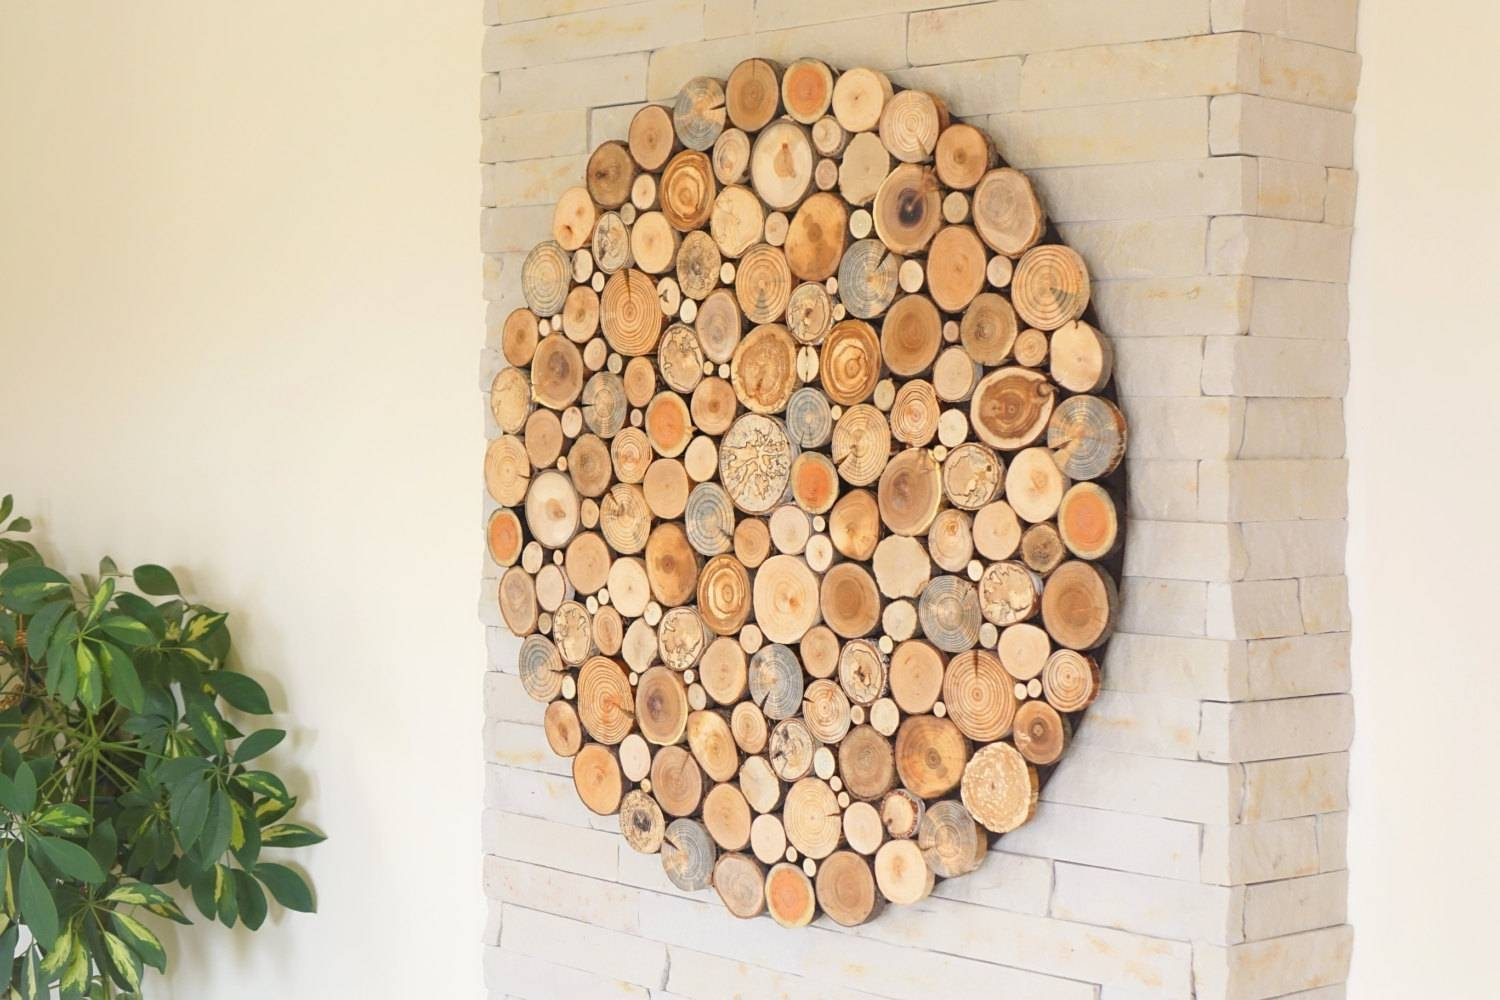 Modern Wall Wood Art Round Wooden Wall Wooden Decor, Tree Rounds Pertaining To Most Recently Released Wood Wall Art (View 10 of 25)